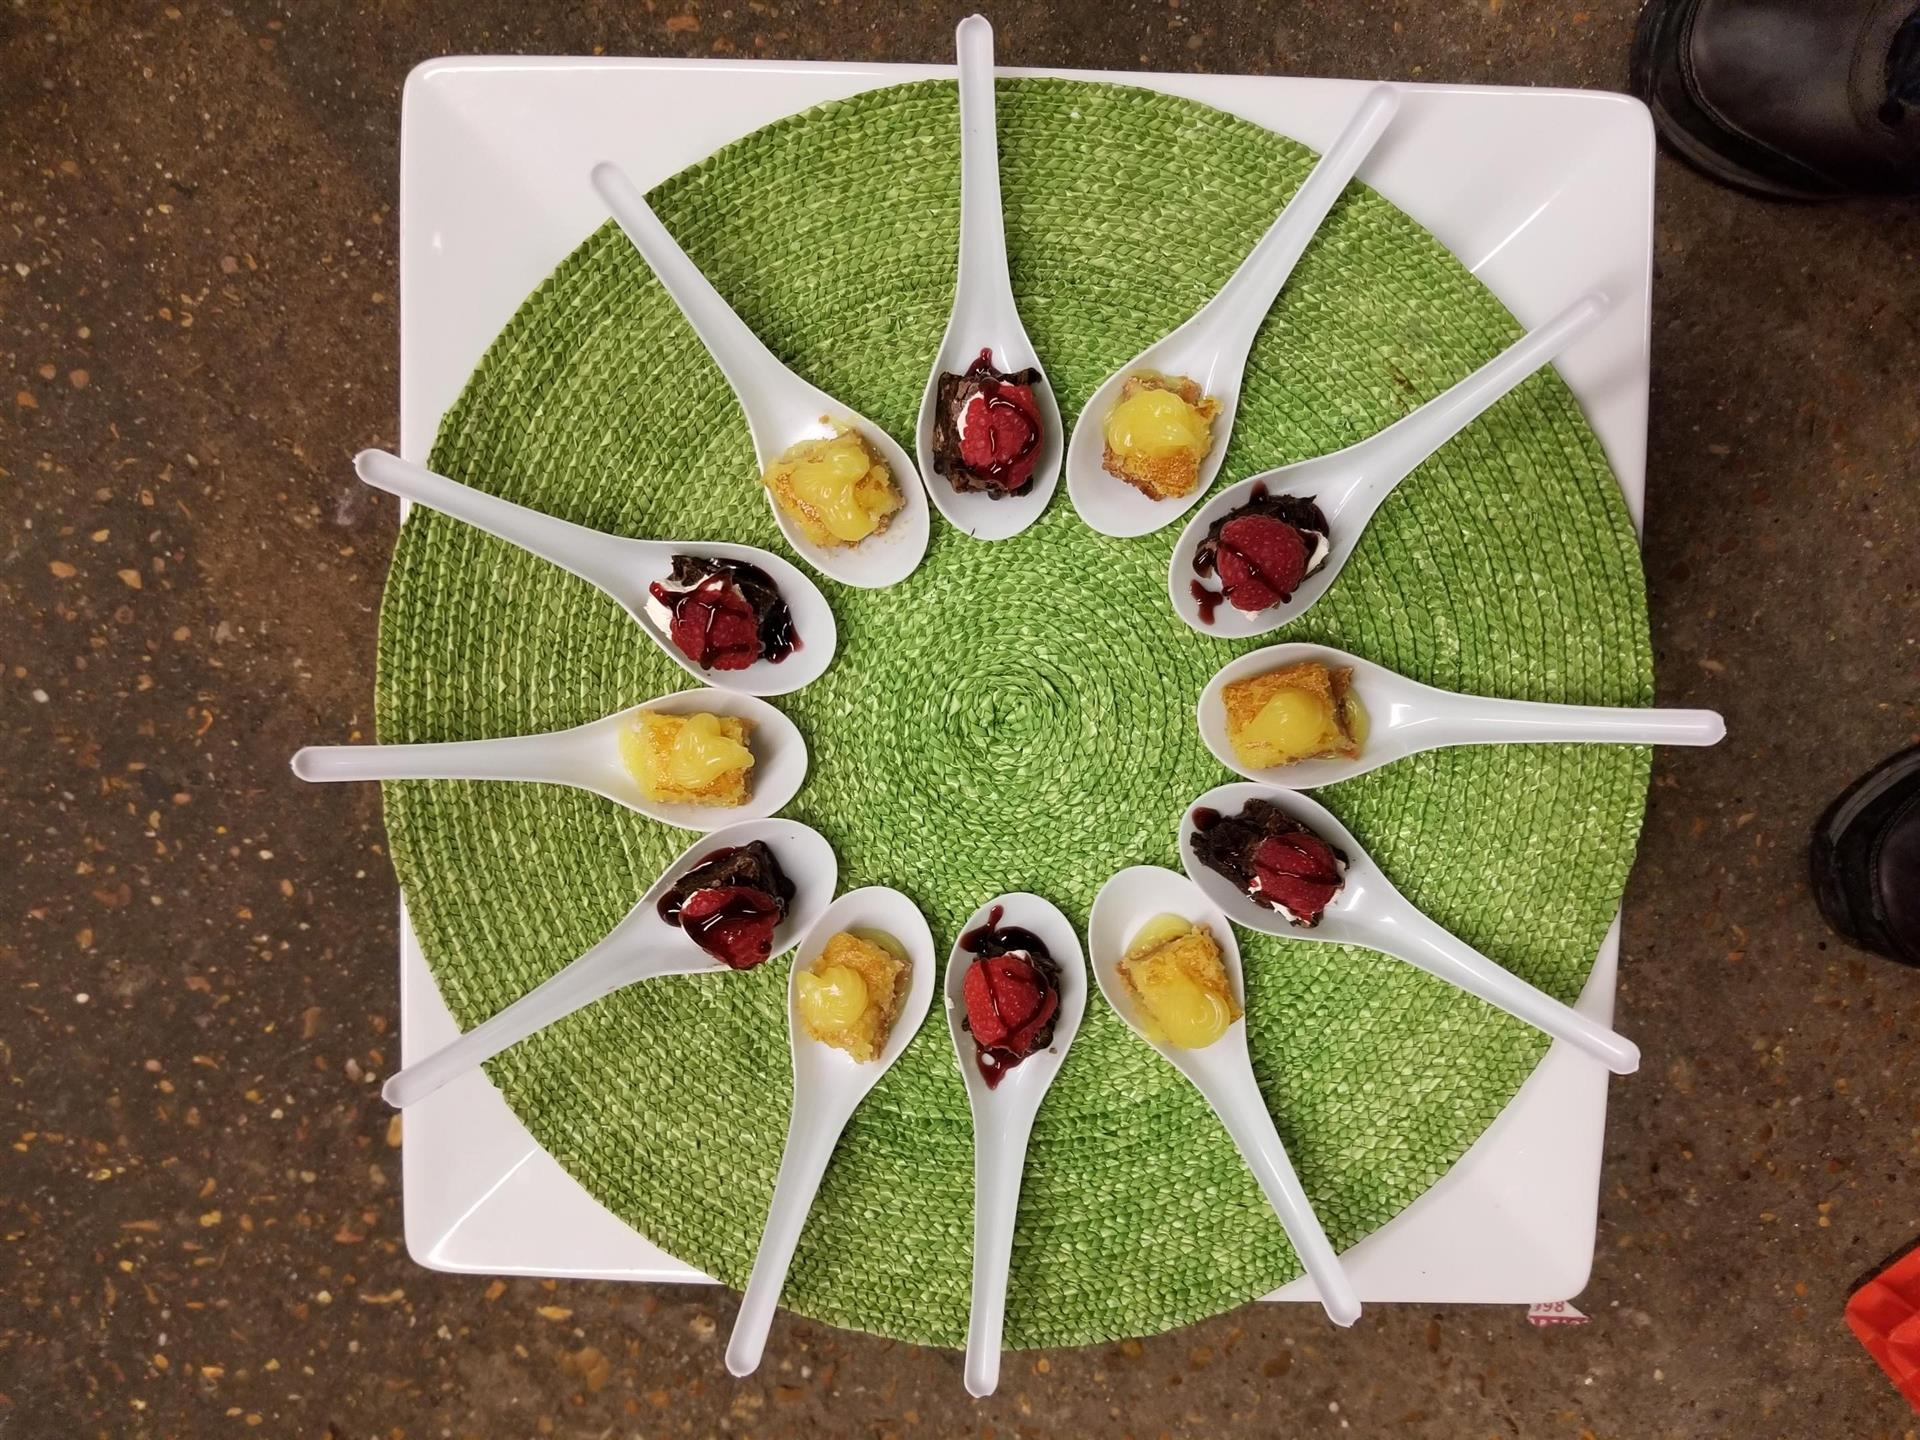 several spoons arranged in a circle with desserts on them